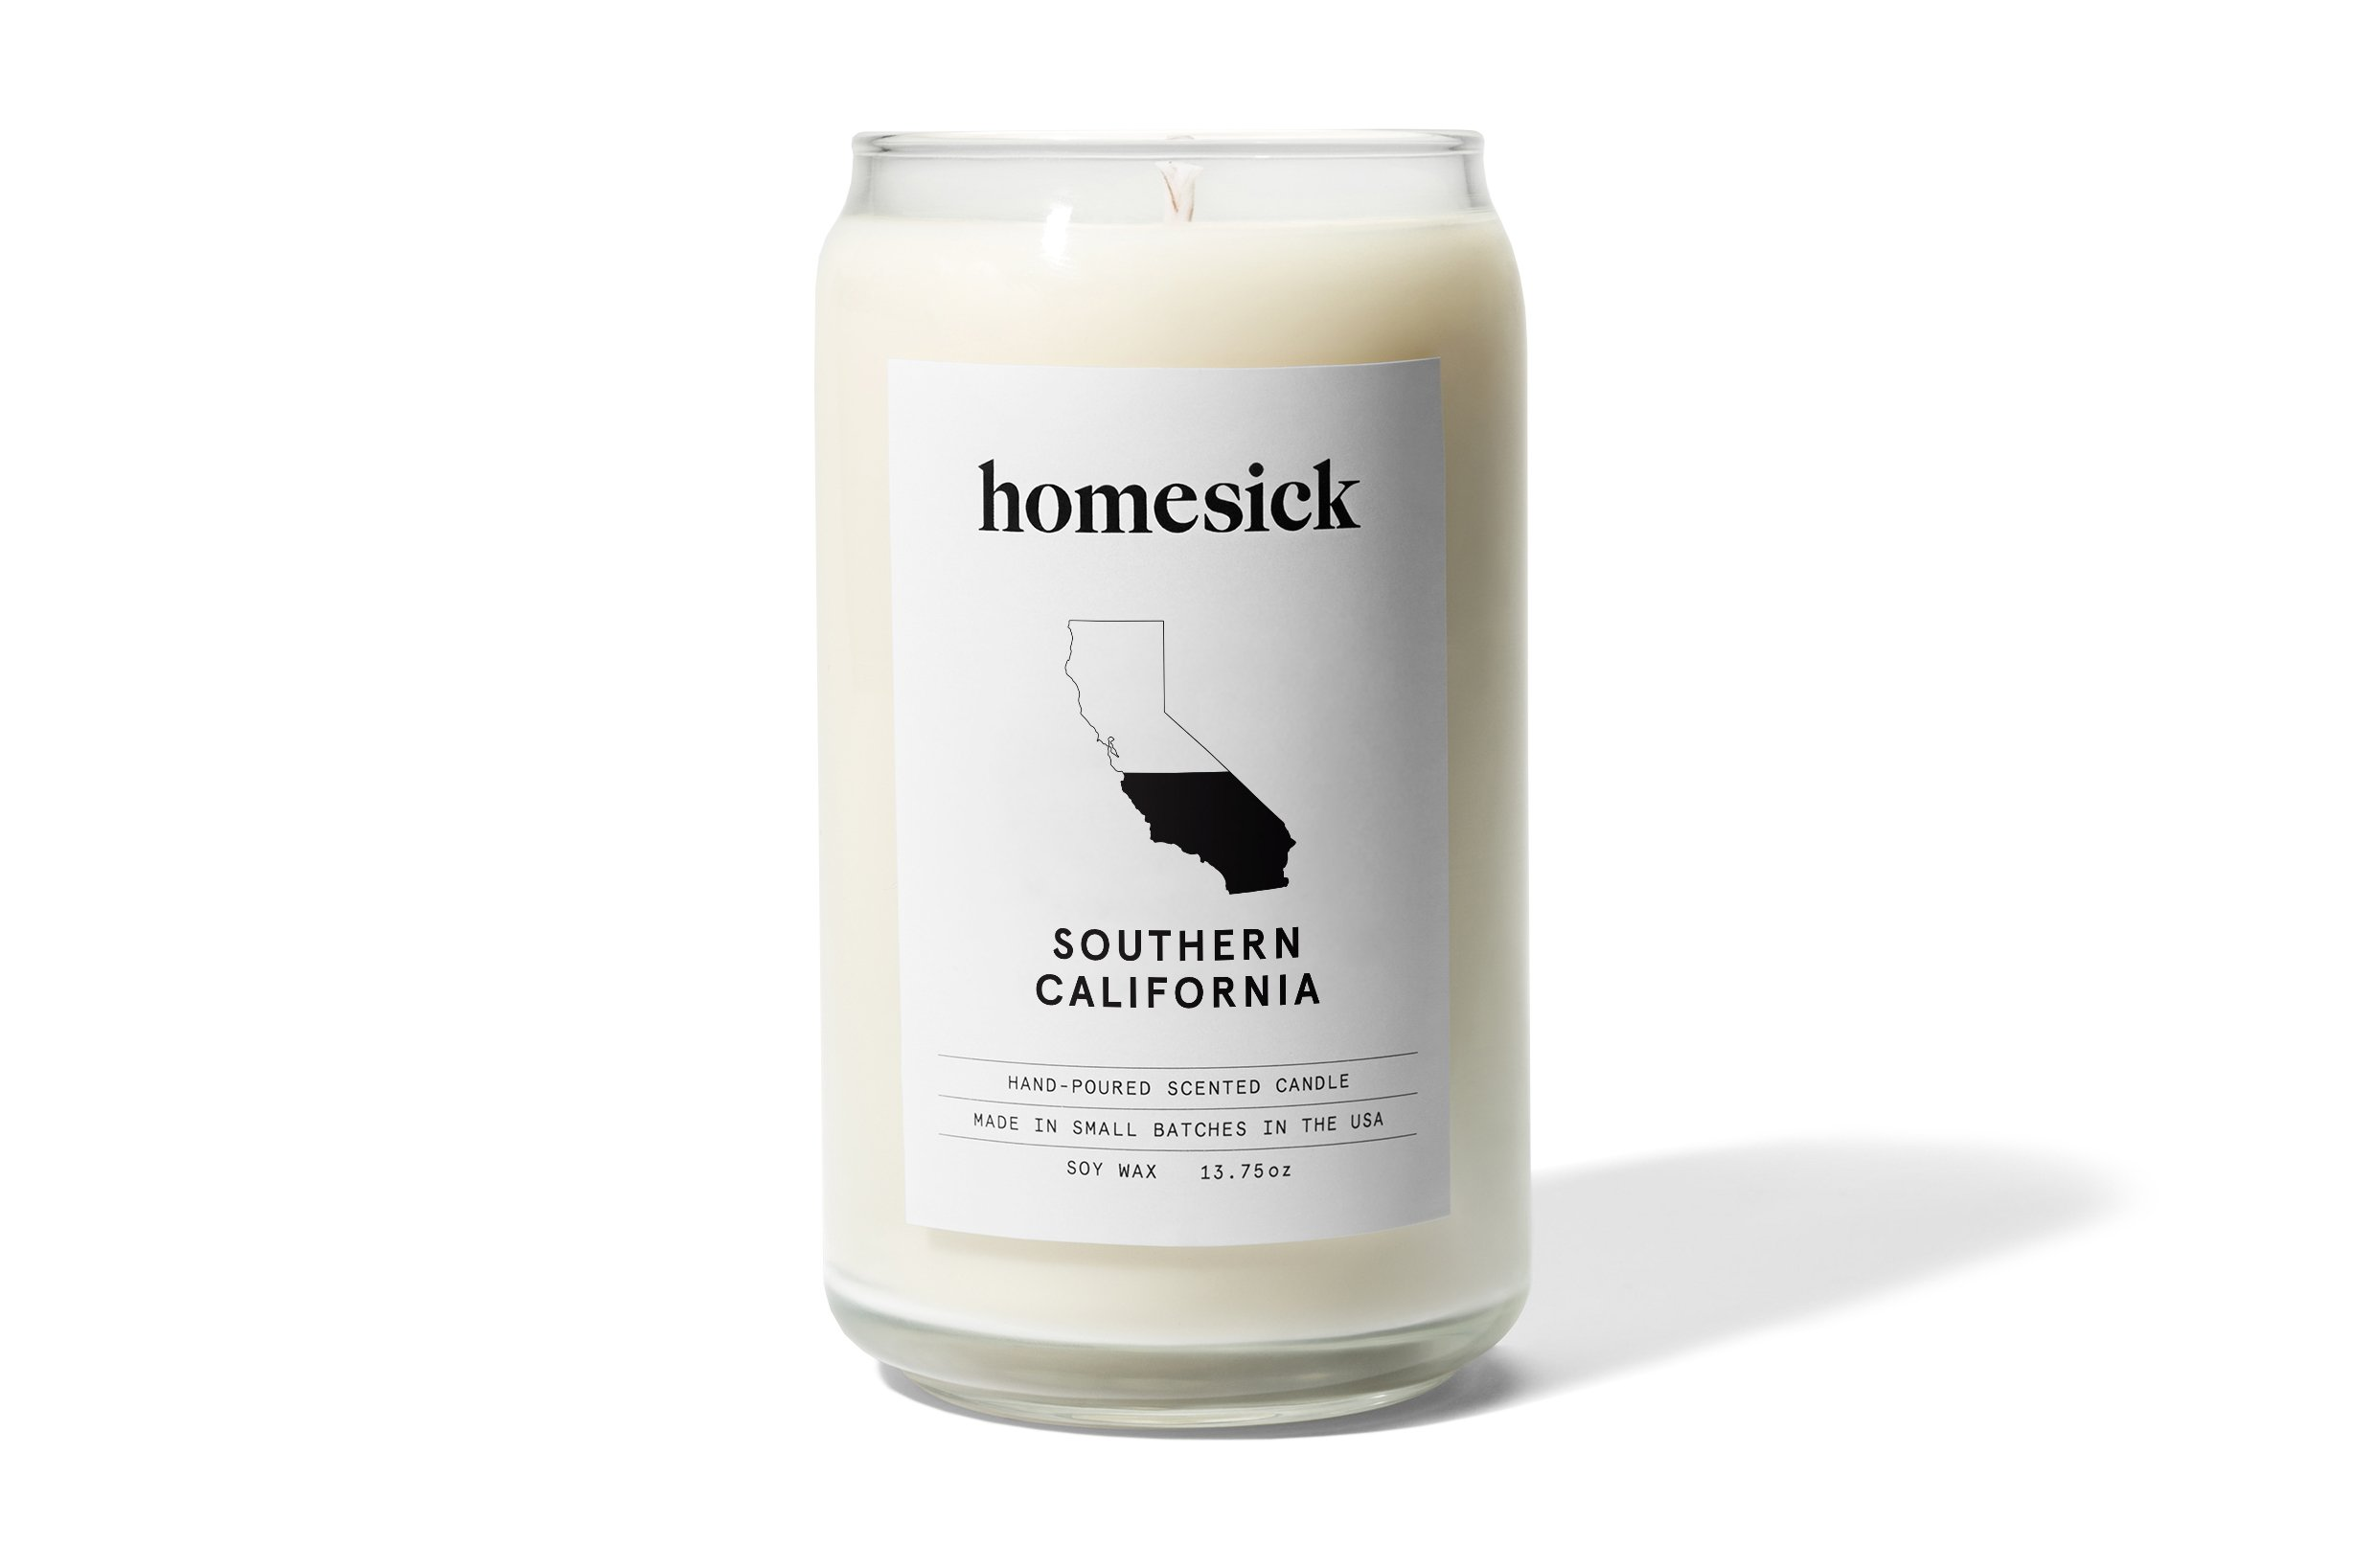 Homesick Scented Candle, Southern California by Homesick